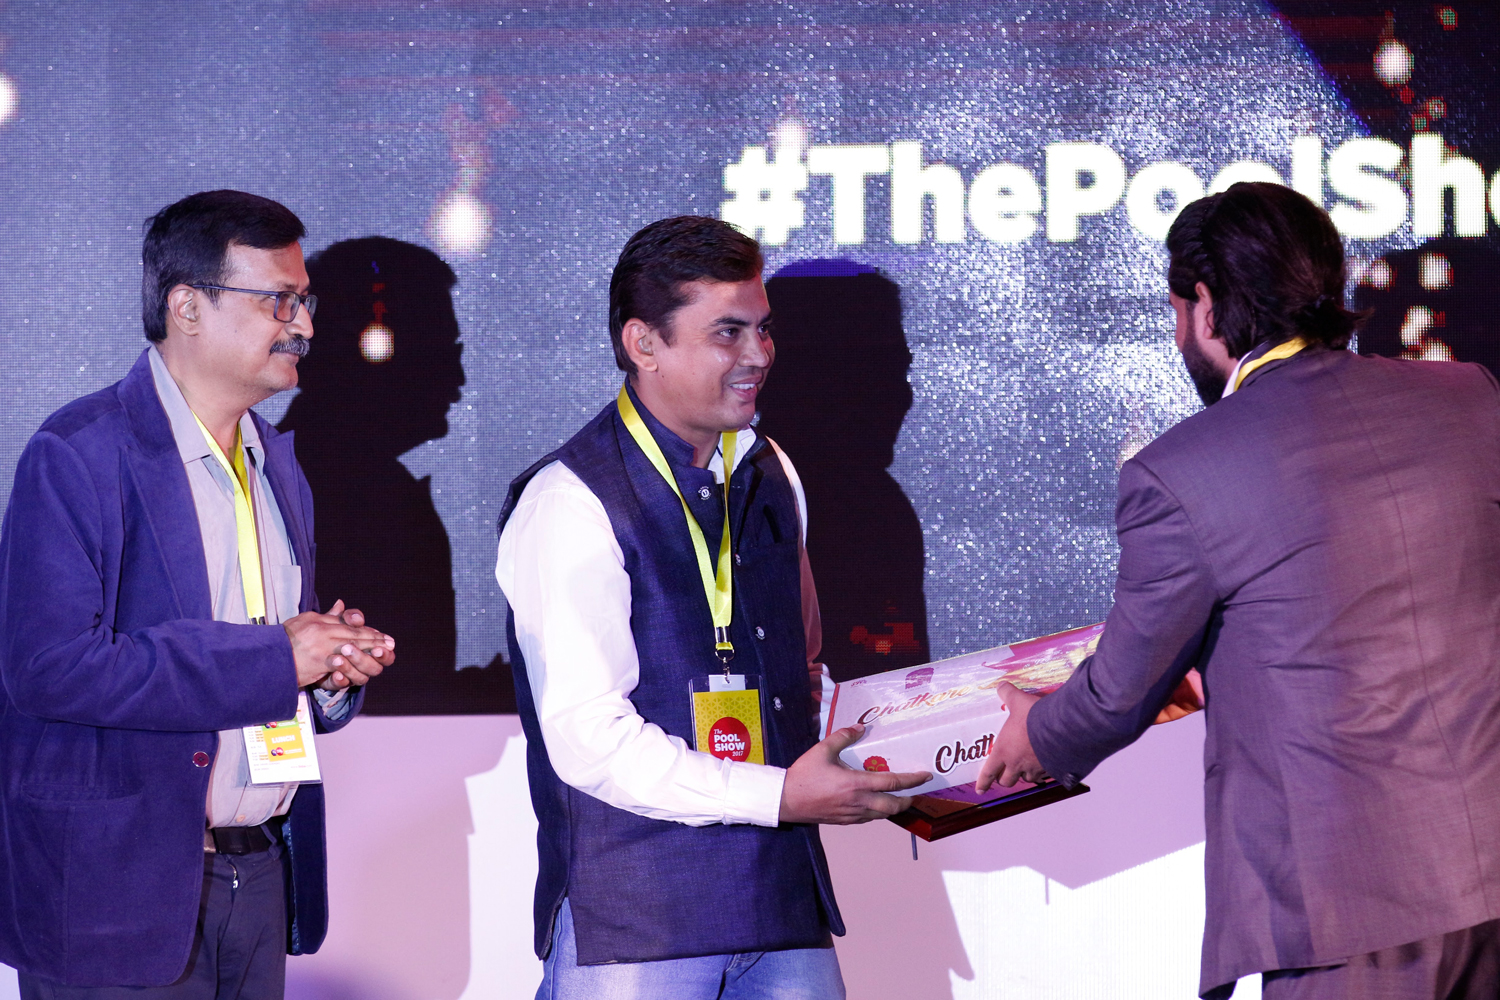 A. Balasubramanium, Bhavin Dabhi, and Abhijit Bansod, receive mementos from Deepak Gautam, Head of Finance at INDI Design and POOL Magazine.